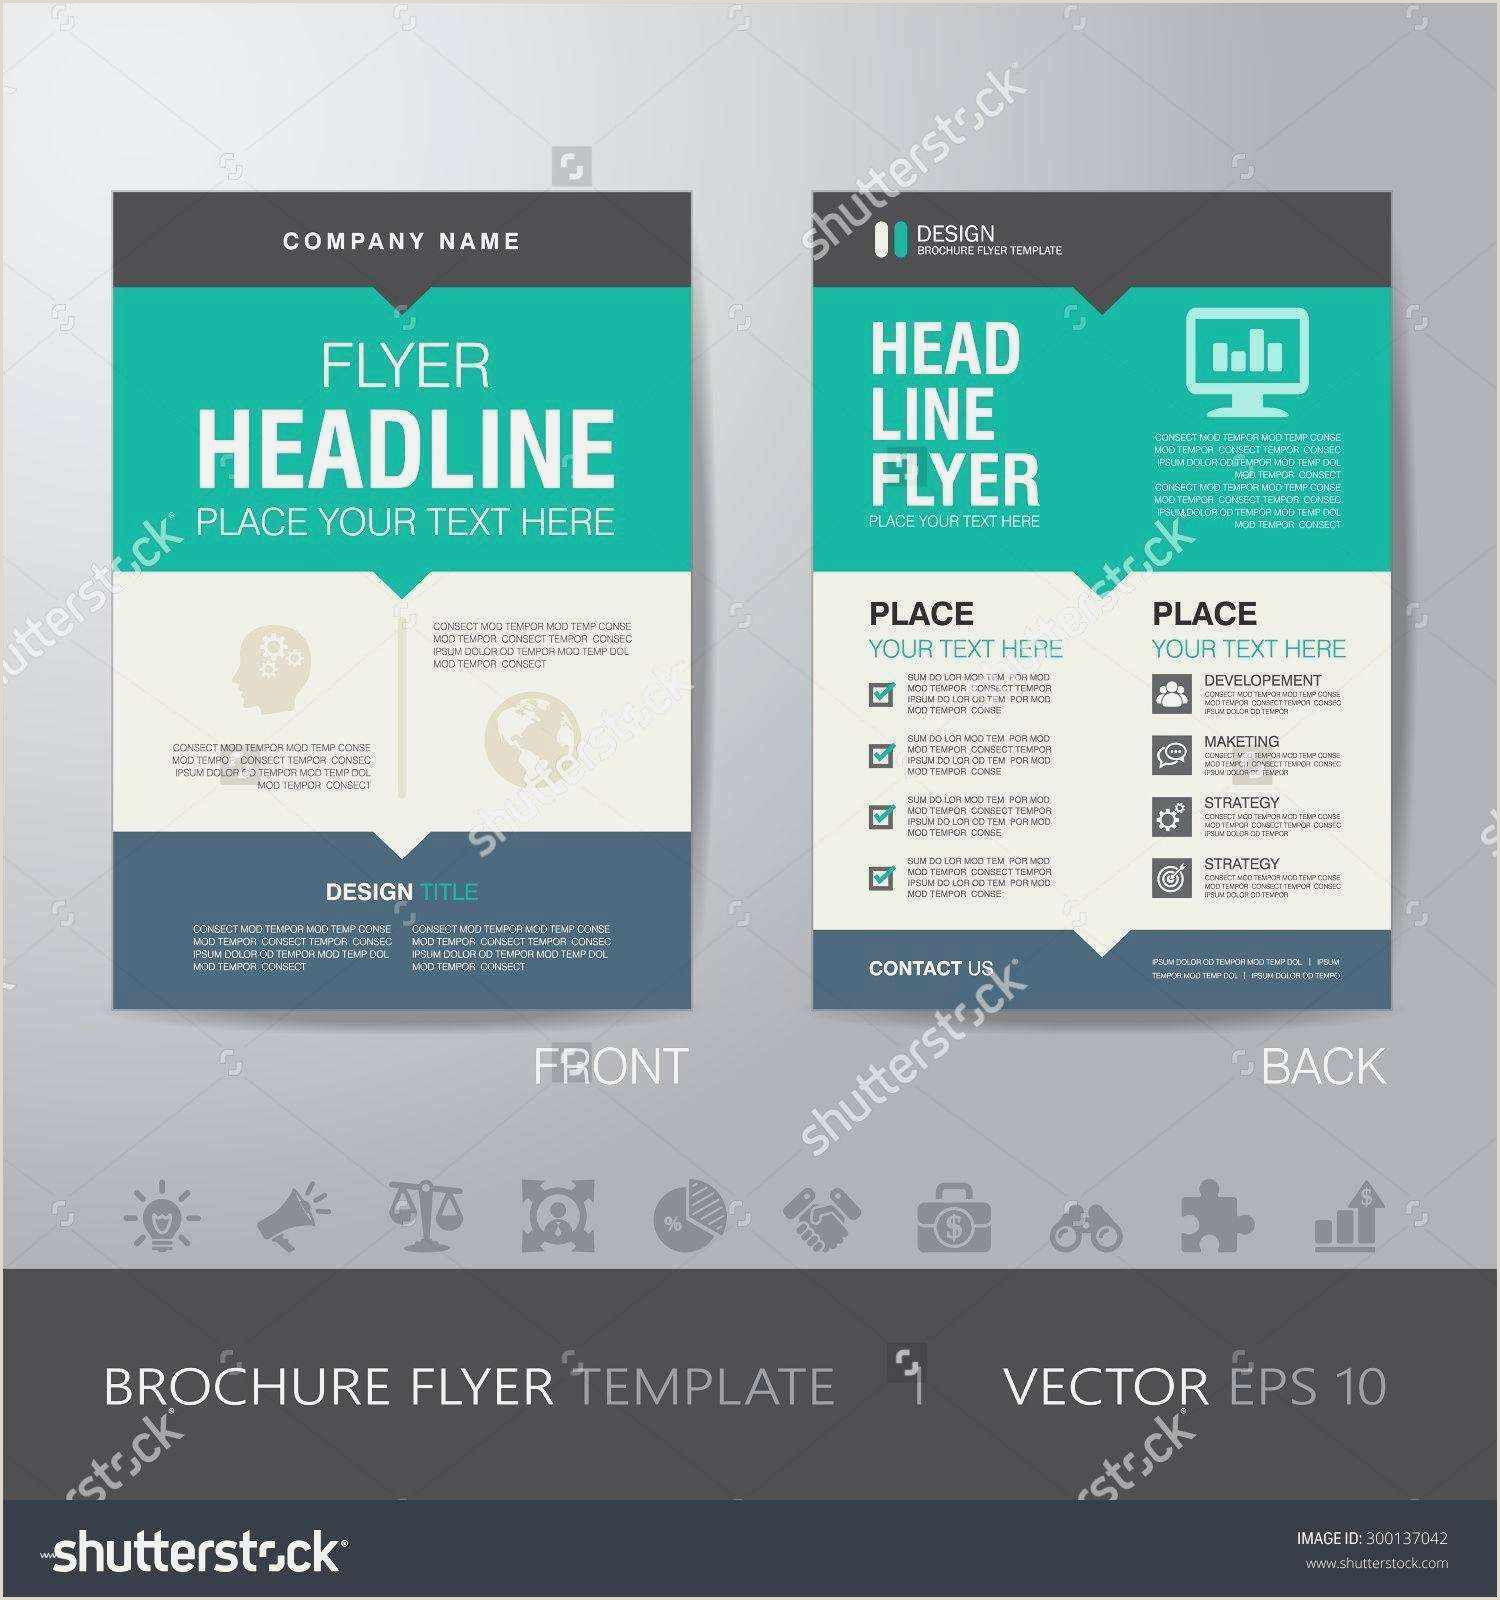 Download HTML Email Invitation Templates Free Reference